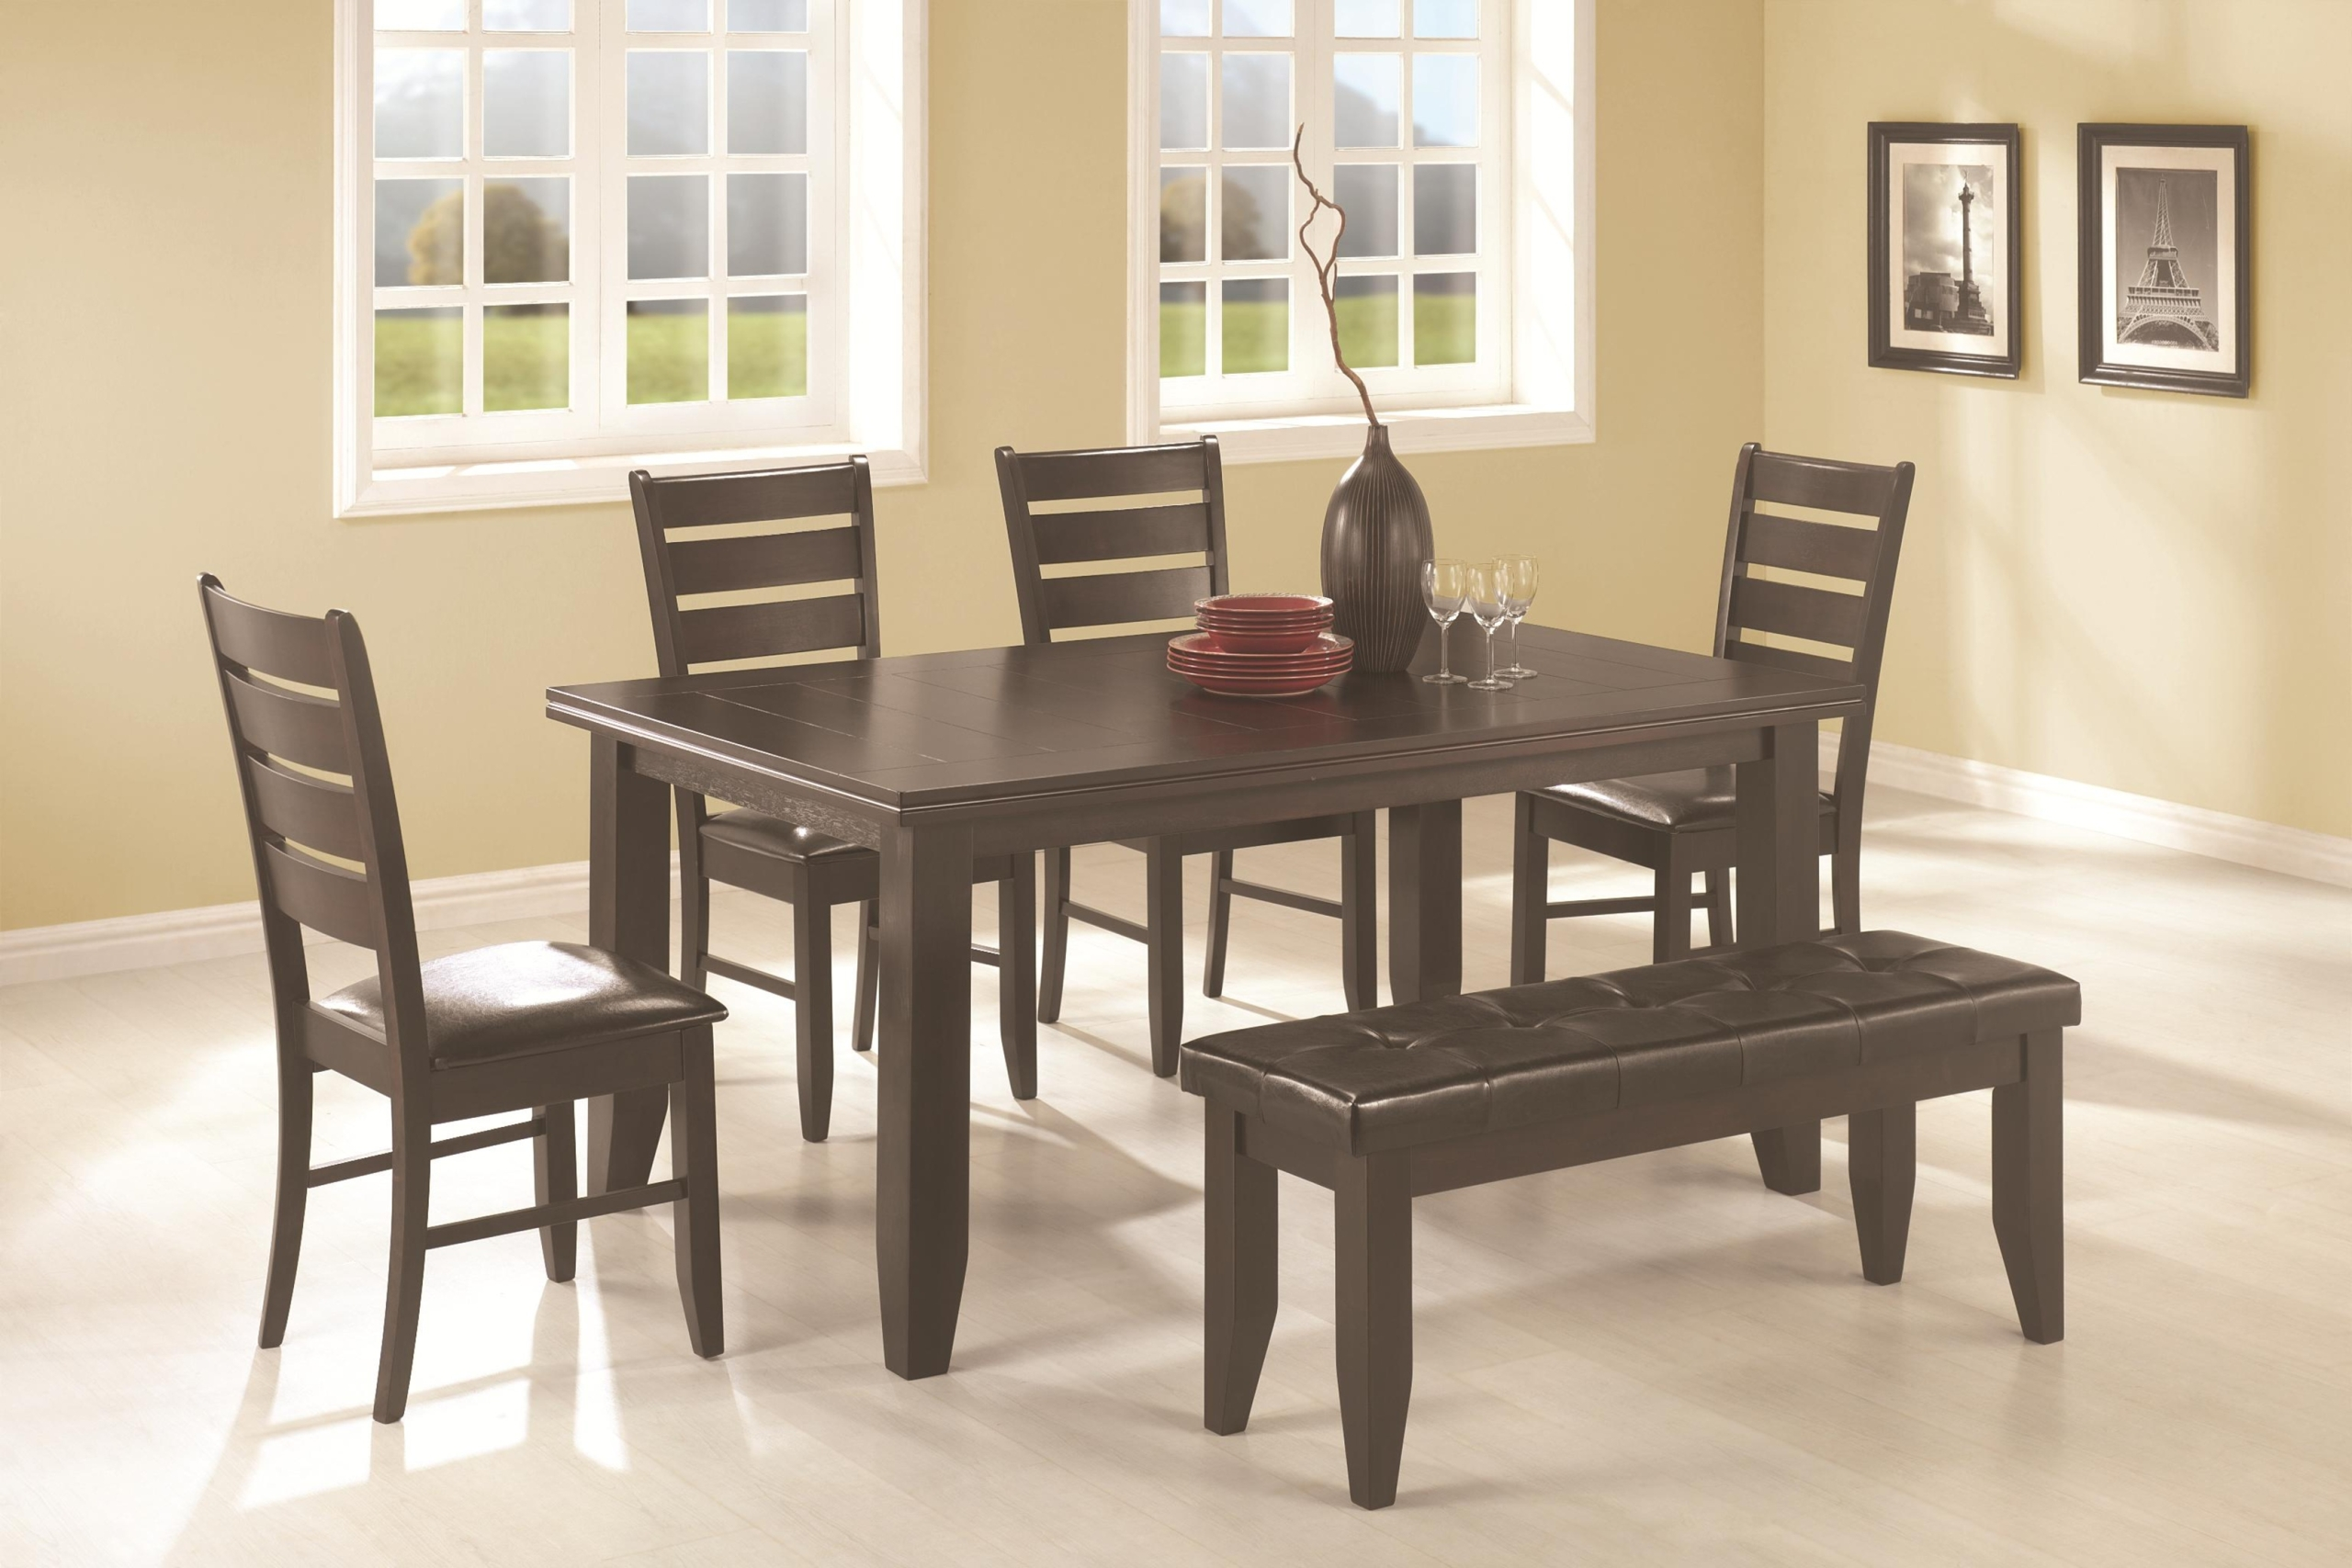 Dining Table: Bench Set Dining Table